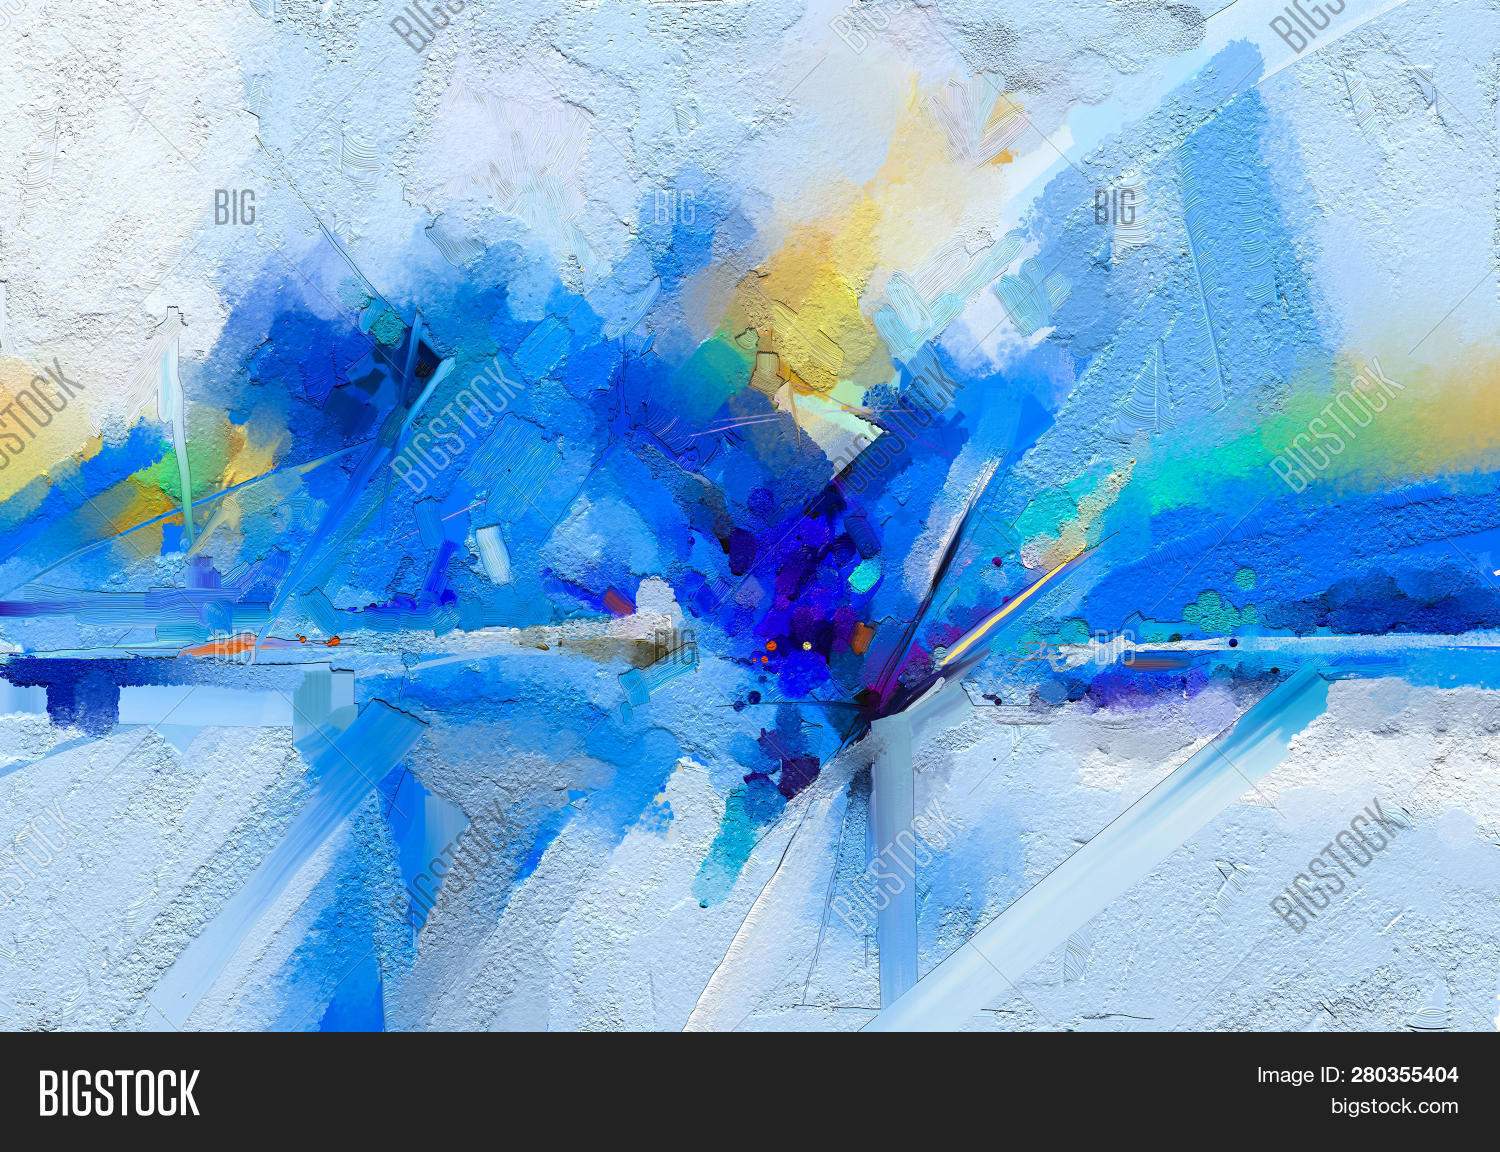 abstract,acrylic,art,artistic,artwork,backdrop,background,blue,blur,bright,brush,brushed,canvas,color,colorful,creative,decoration,decorative,design,drawing,element,gold,golden,graffiti,grunge,illustration,image,light,modern,multicolor,oil,paint,painting,paper,pattern,red,rough,sketch,space,splash,stain,stroke,texture,textured,wall,wallpaper,white,yellow